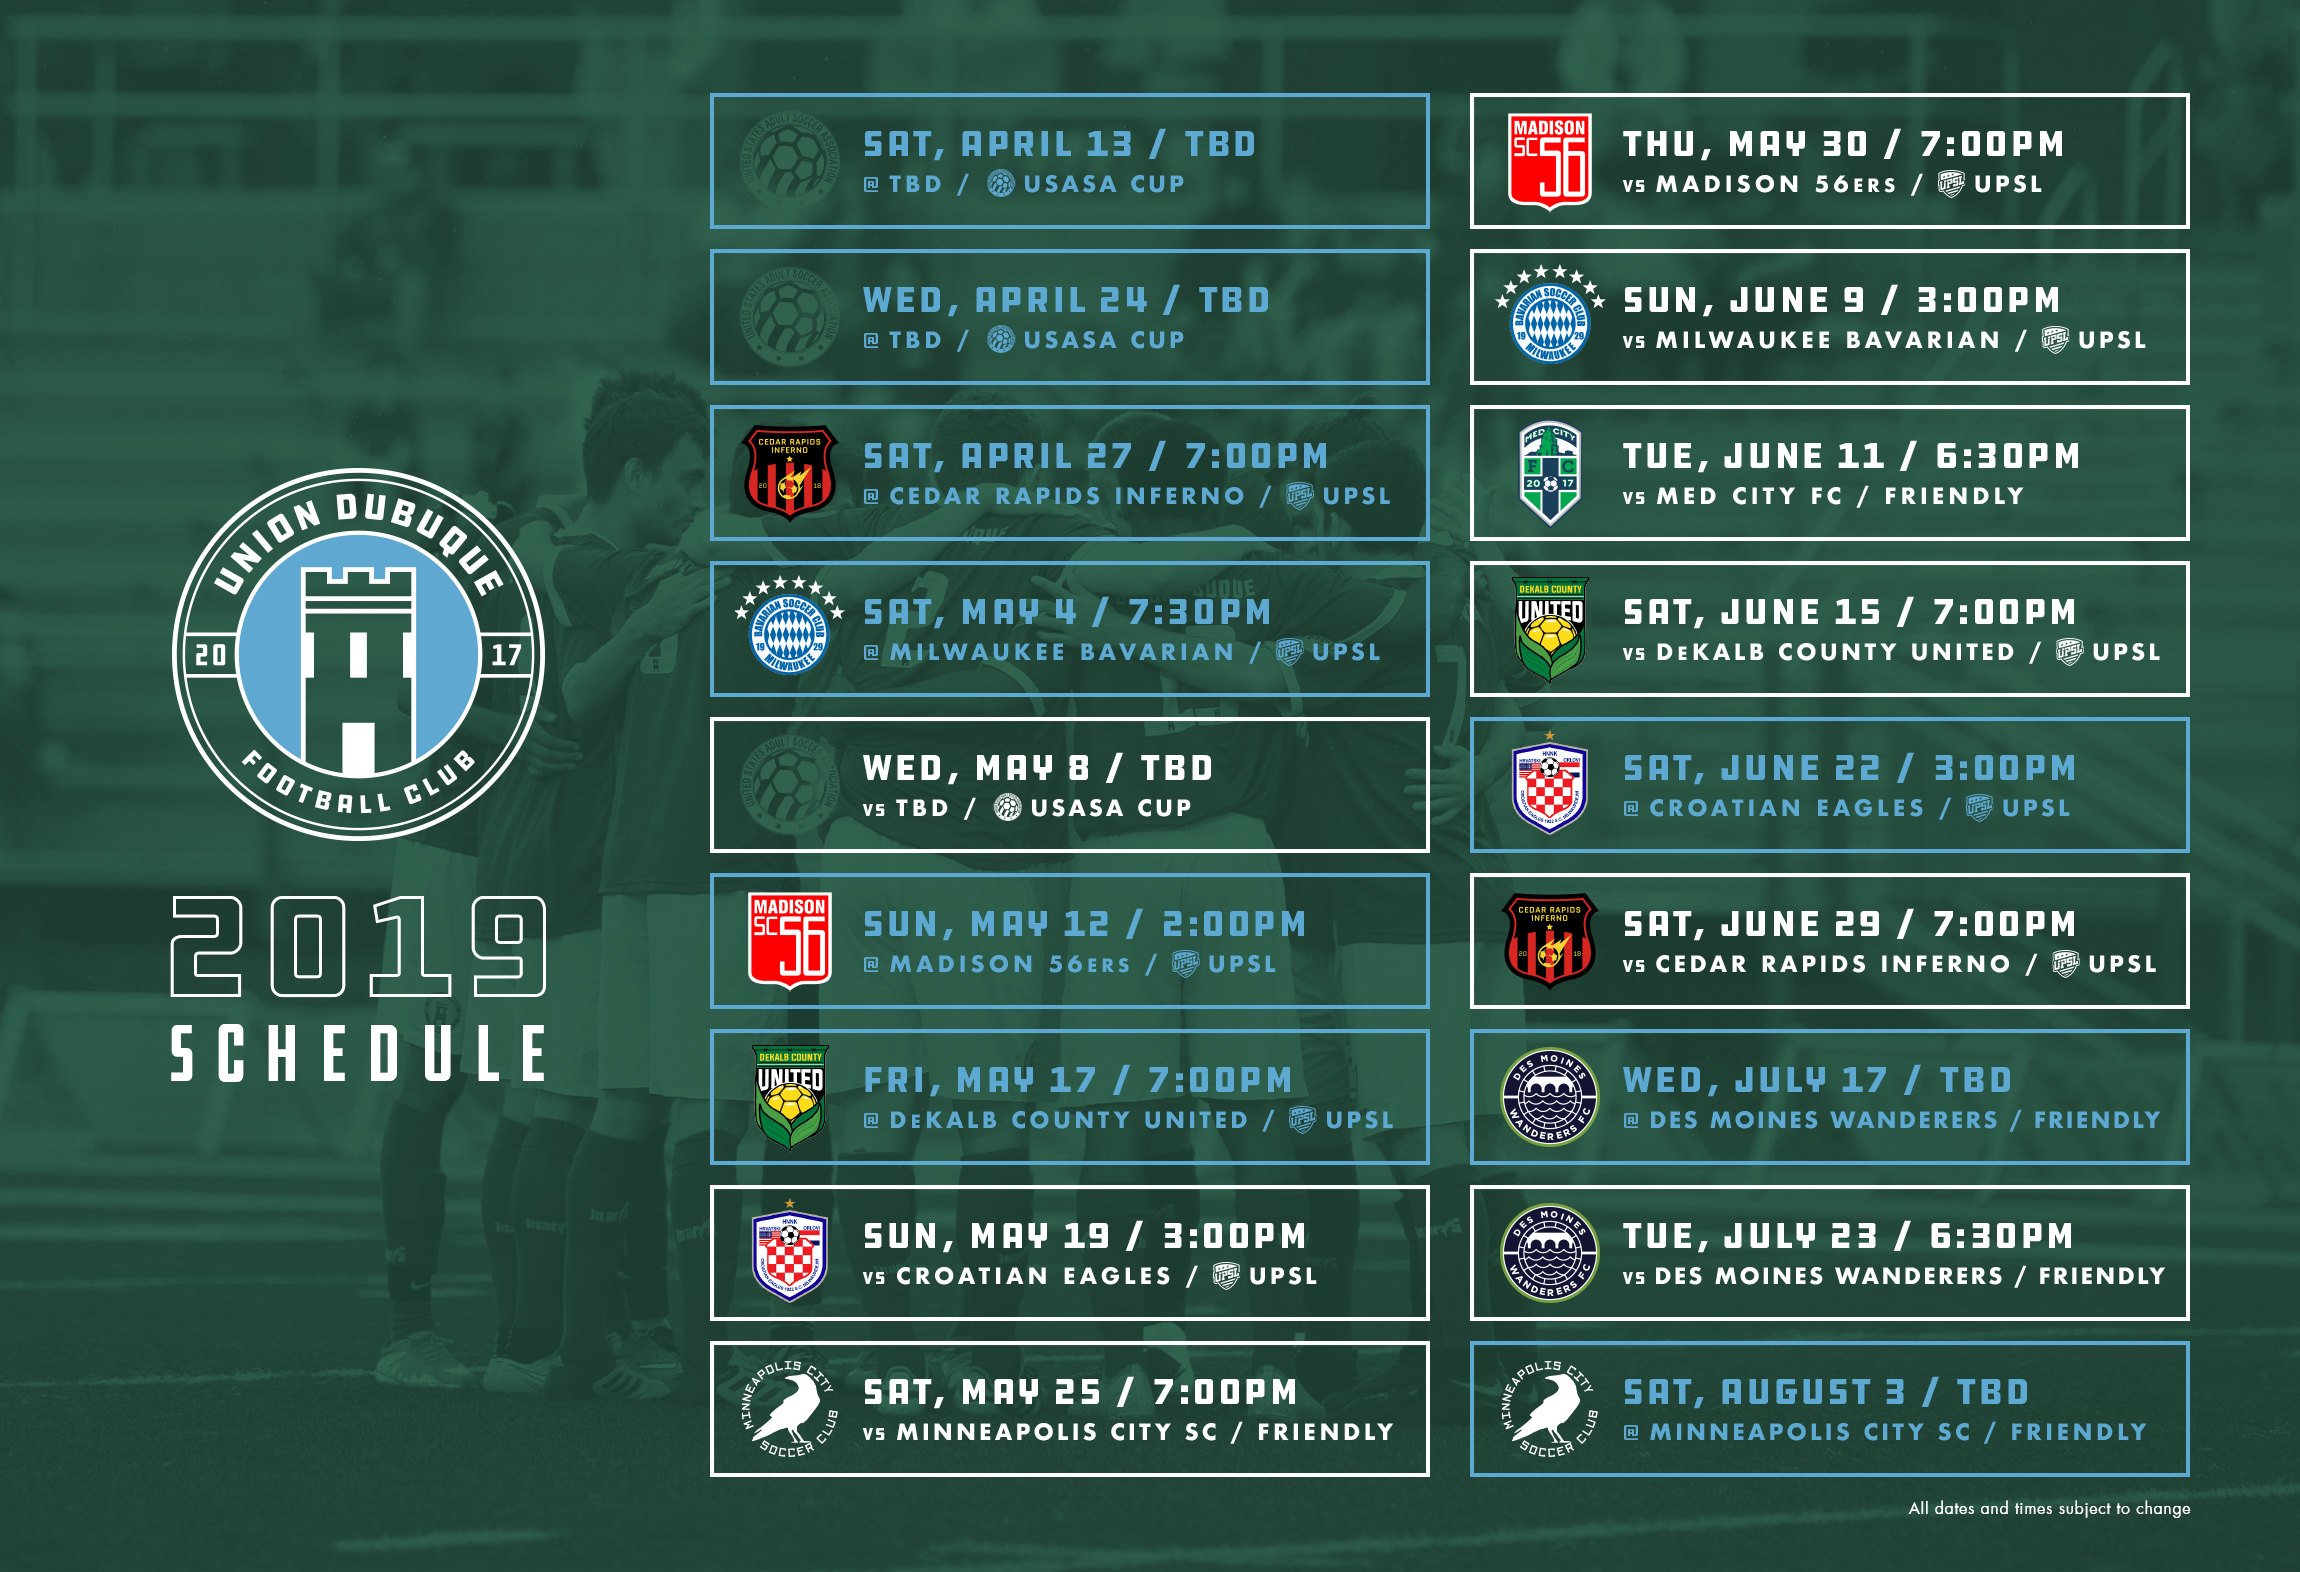 UnionDubuque2019Schedule